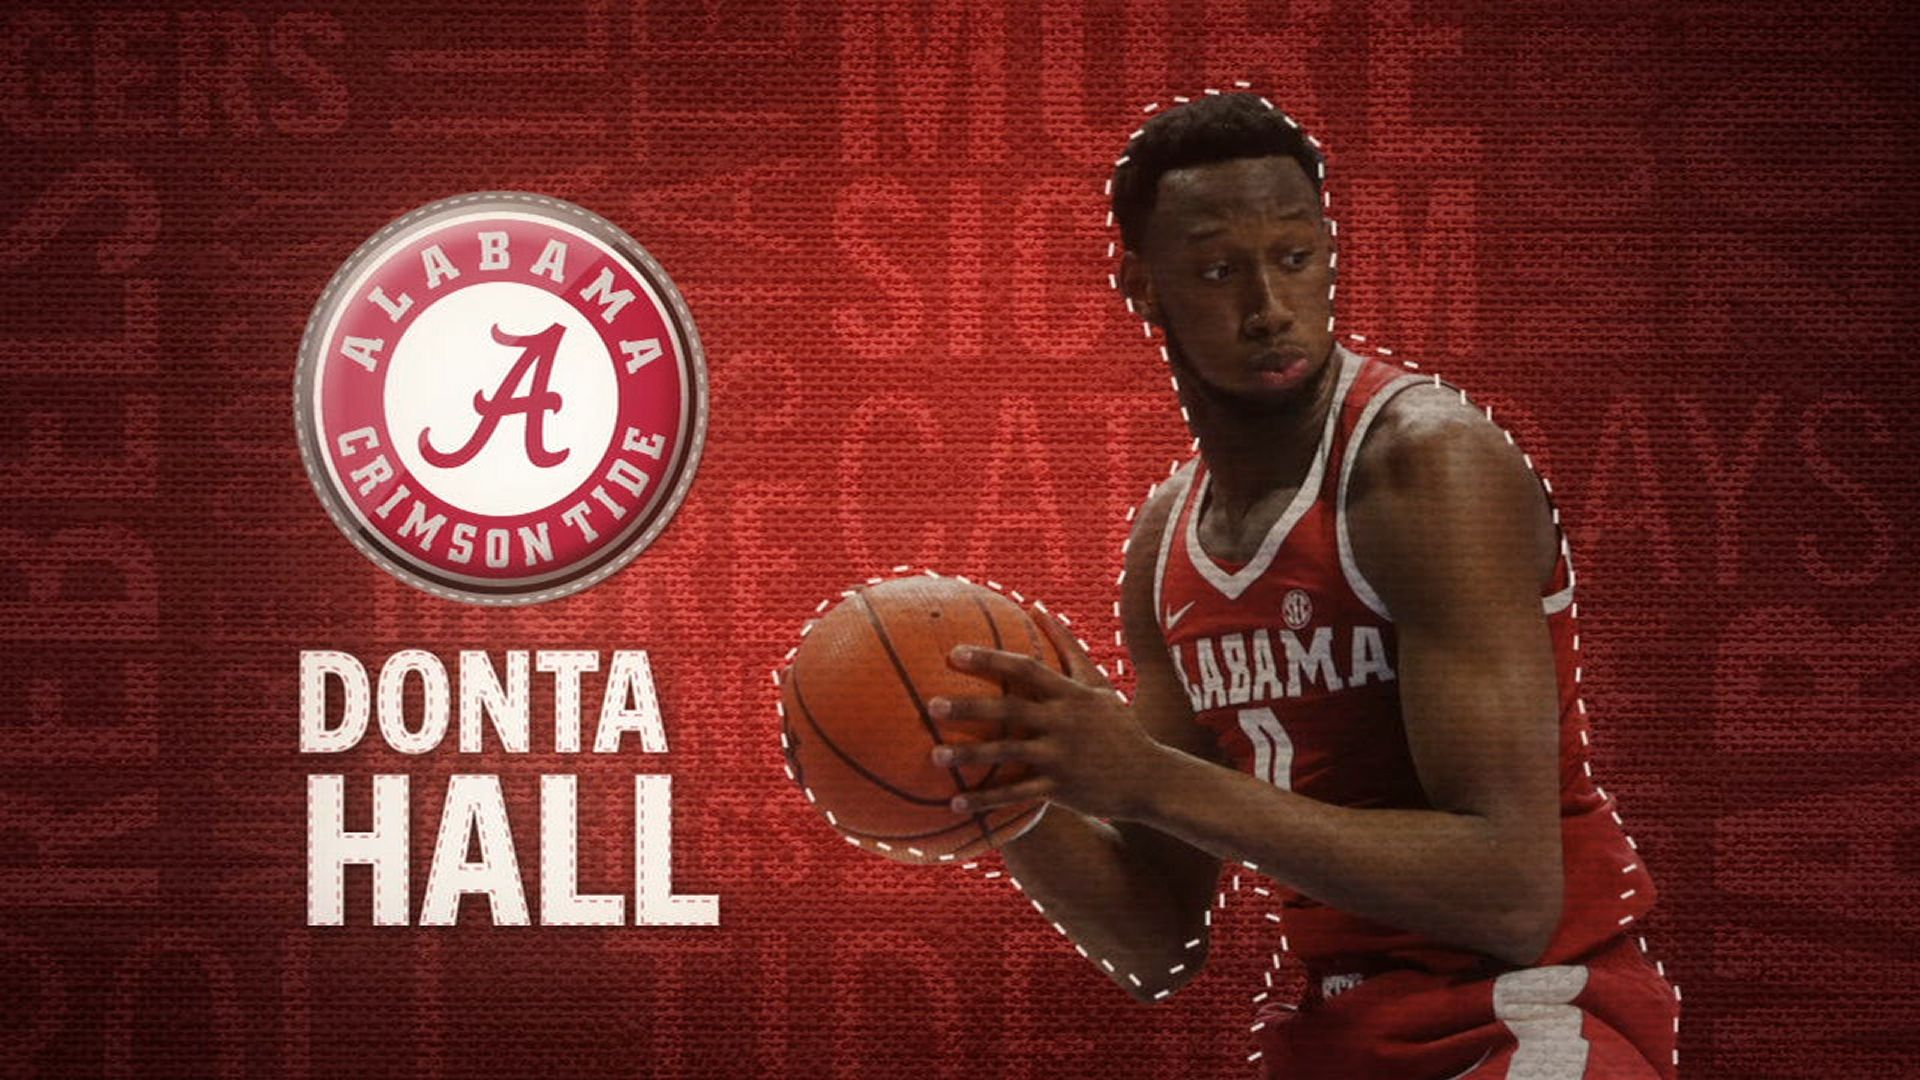 I am the SEC: Alabama's Donta Hall